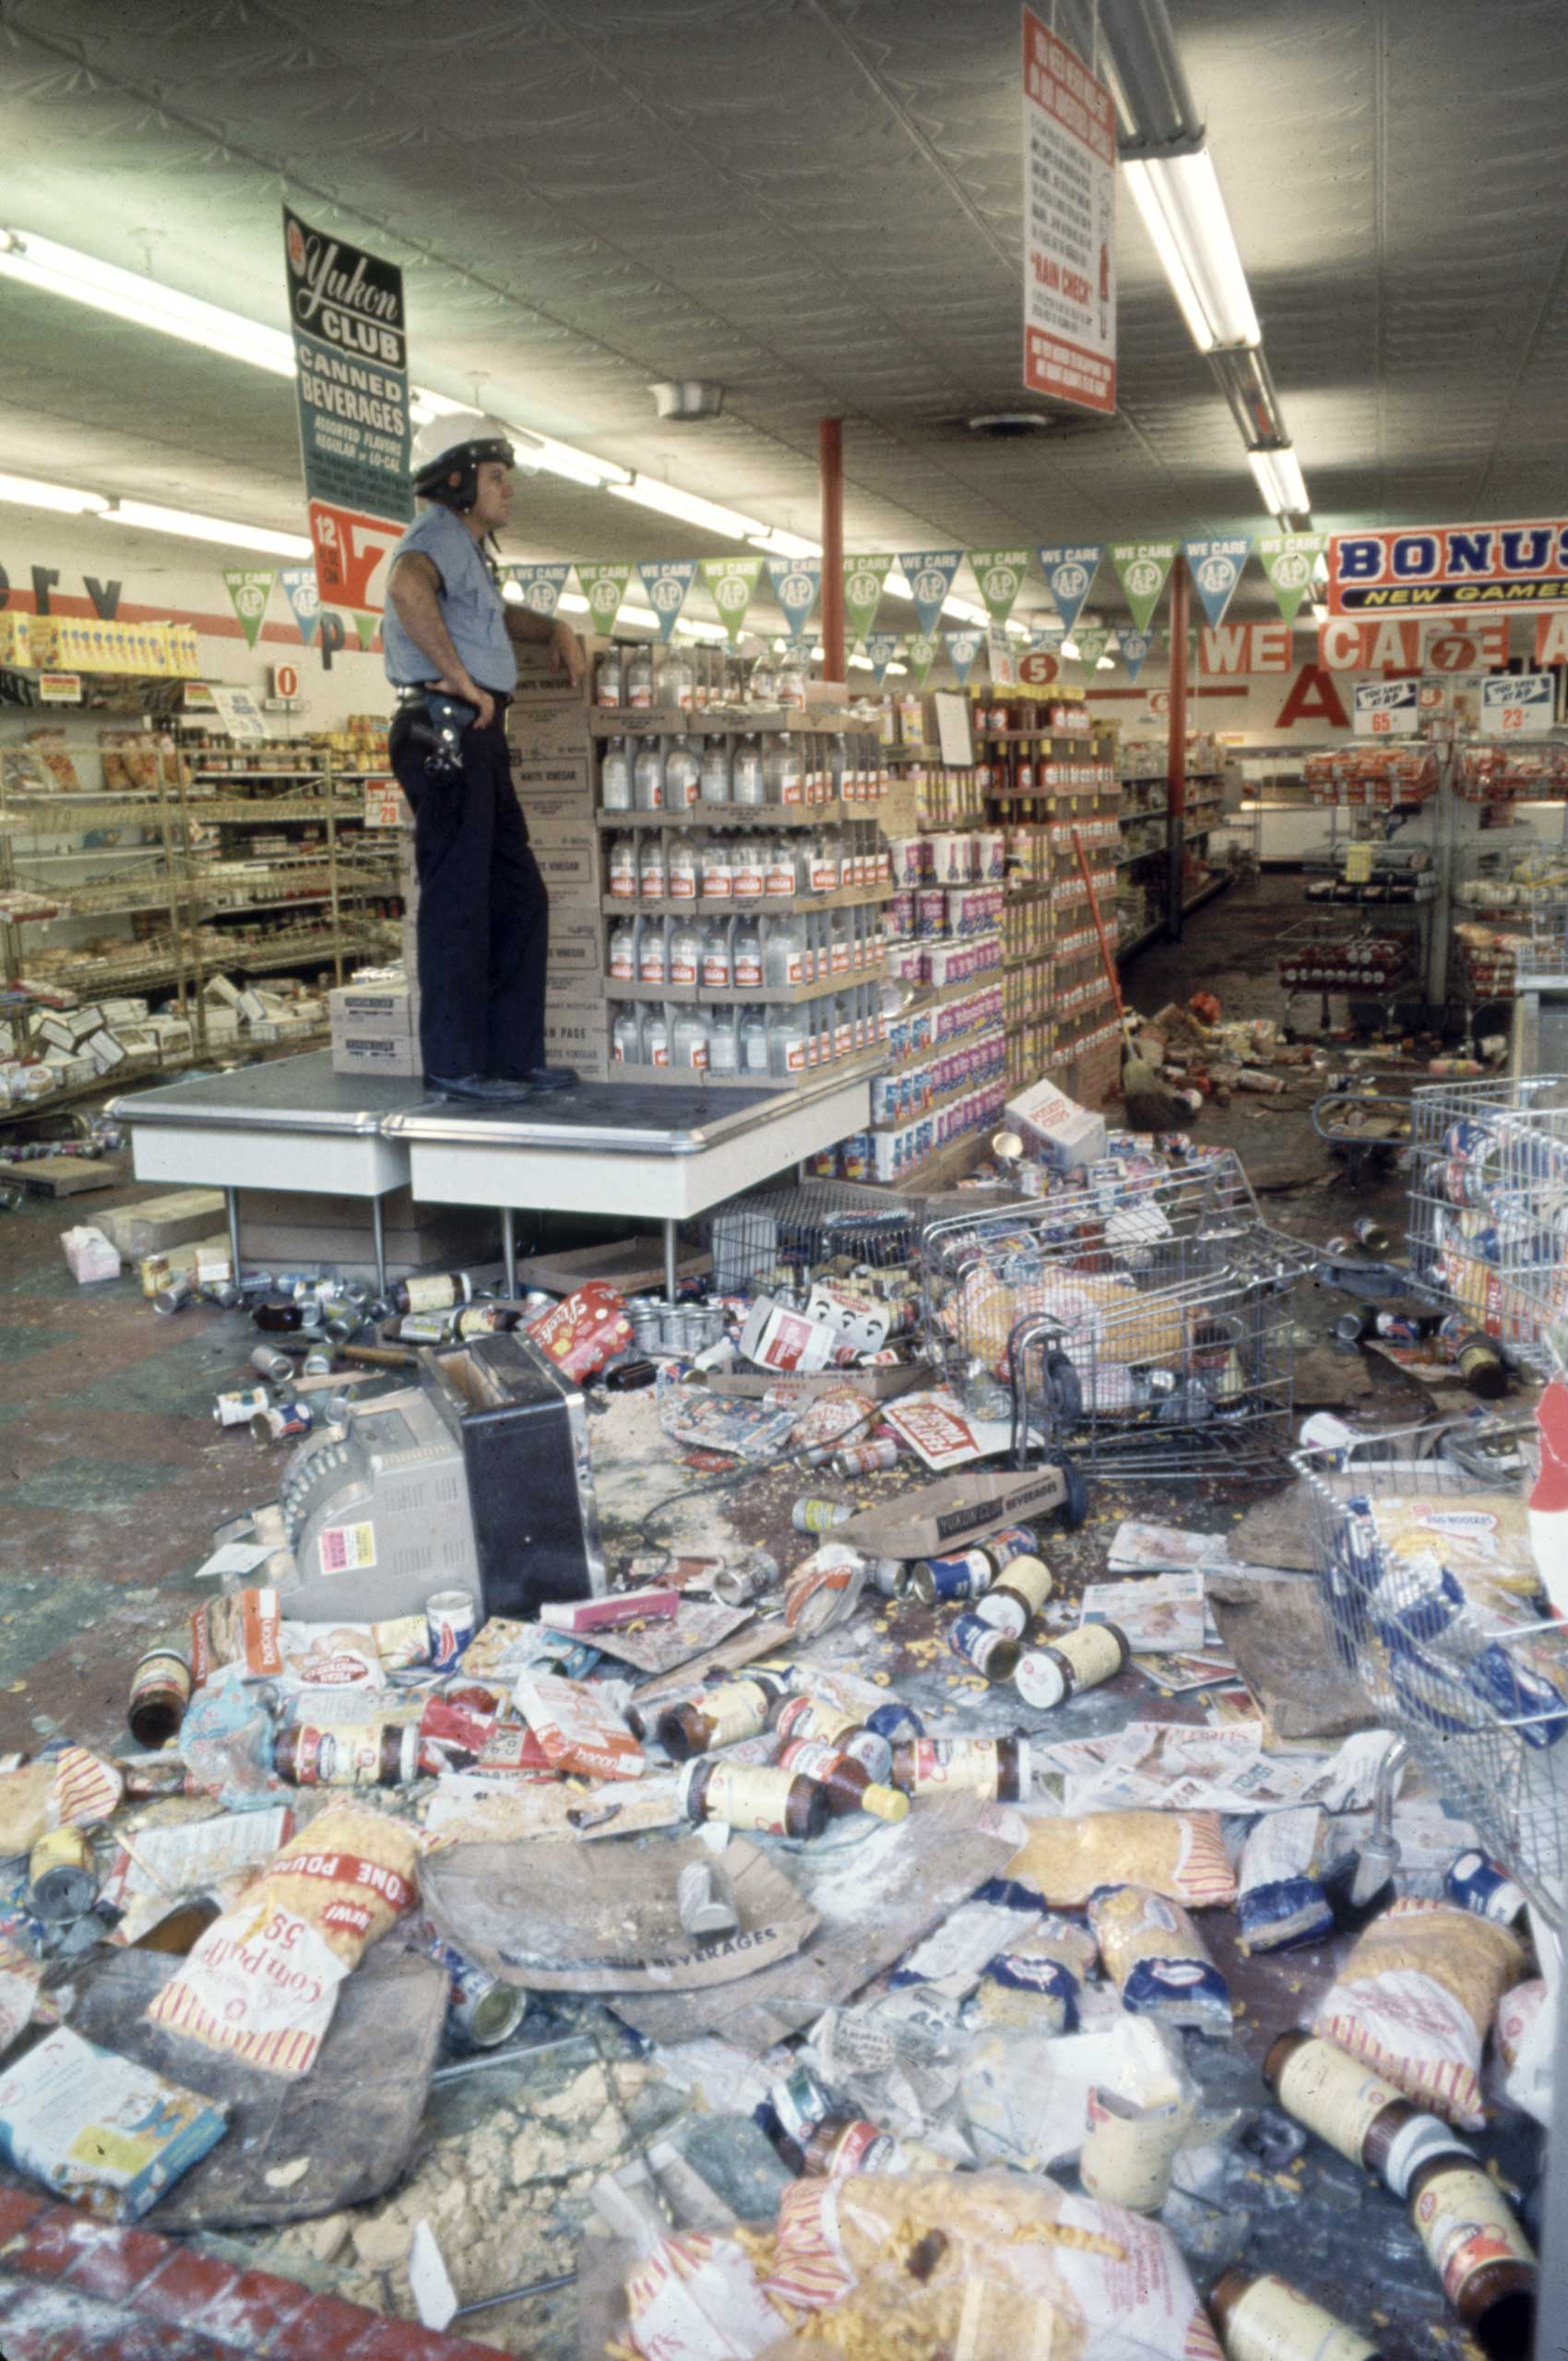 <b>Not published in LIFE.</b> Detroit, July 1967. A Detroit police officer stands guard over a grocery store looted during race riots.